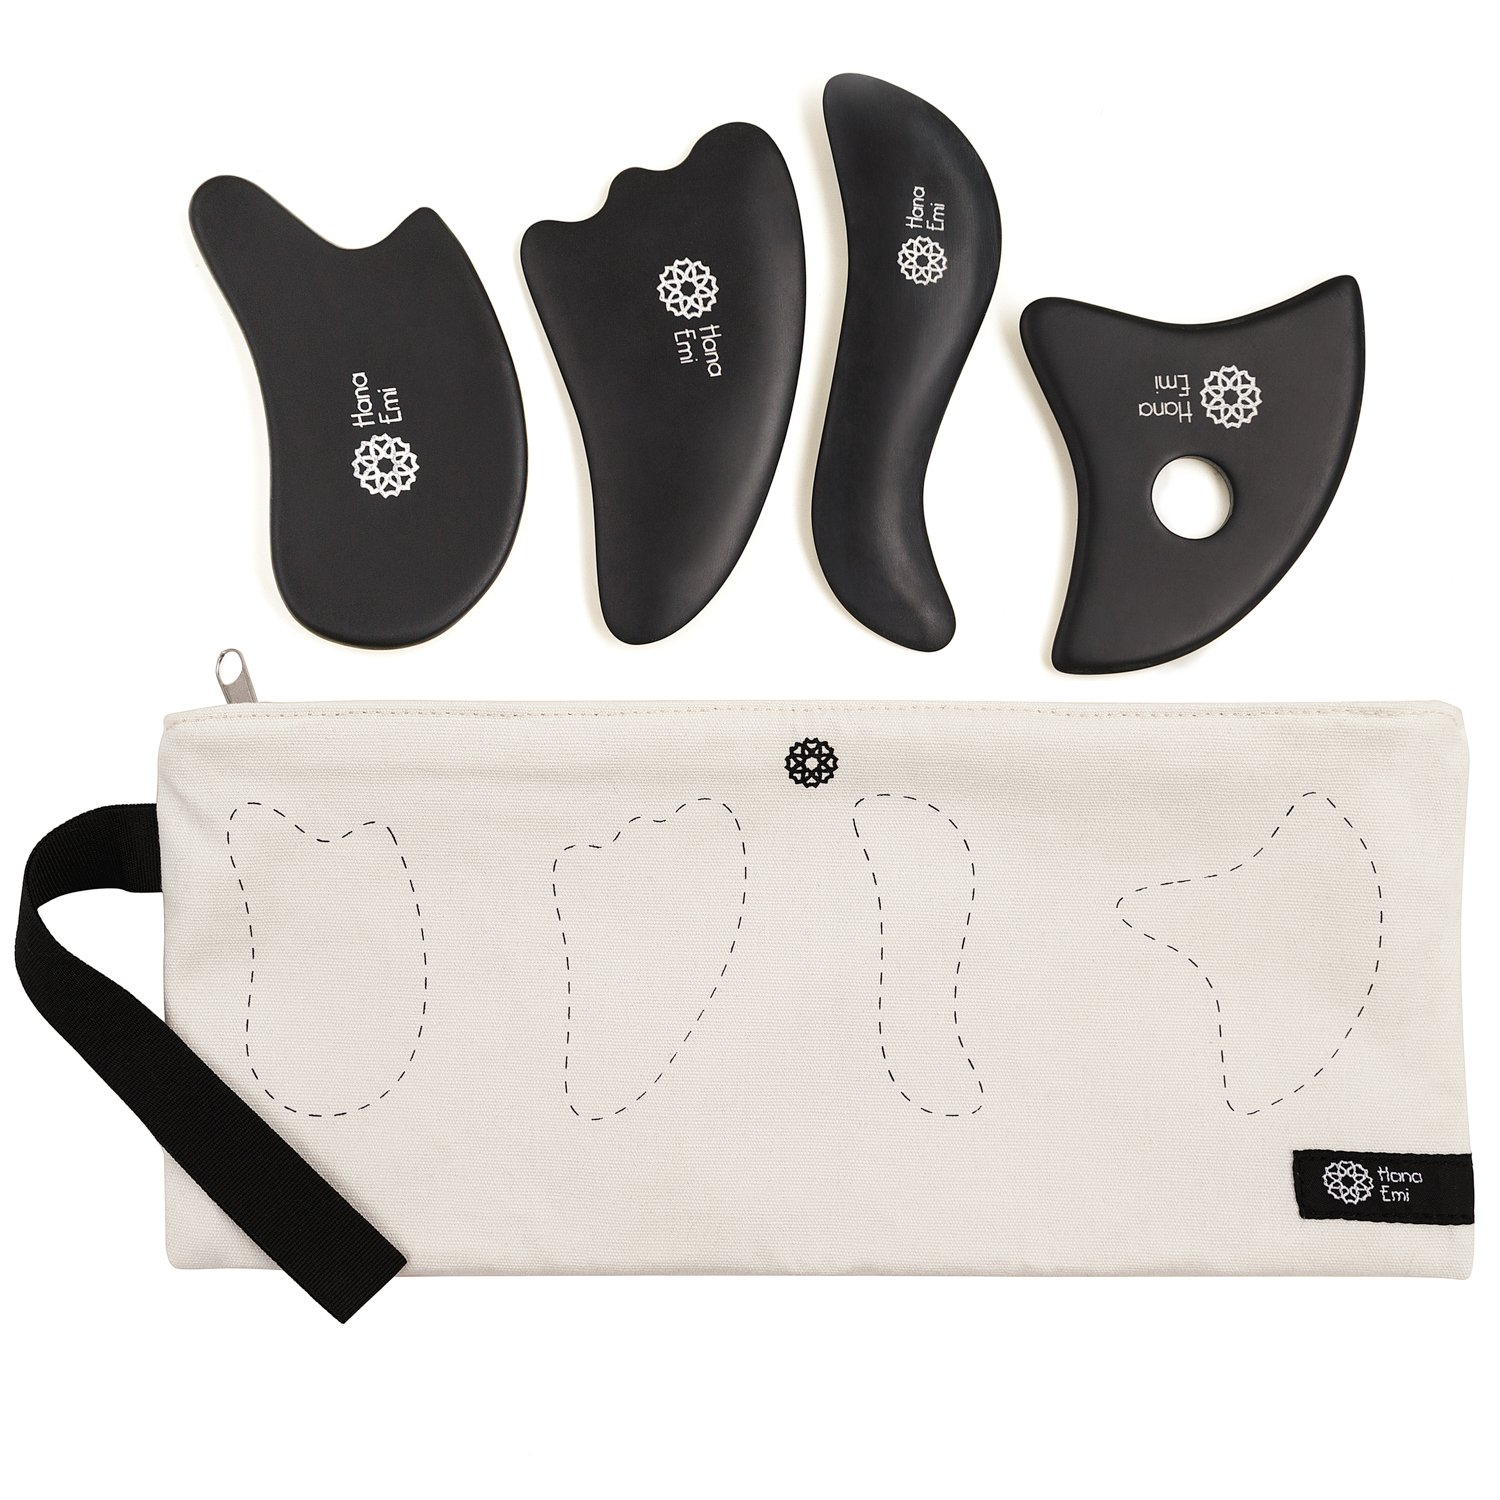 4 Gua Sha Scraping Massage Tools with Smooth Edge ✮ High Quality Handmade Sibin Bian Stone ✮ Face and Body ✮ Physical Therapy Tool for Graston, IASTM, ASTYM ✮ STORAGE BAG ✮ E-BOOK BONUS (Complete Set) by Hana Emi (Image #1)